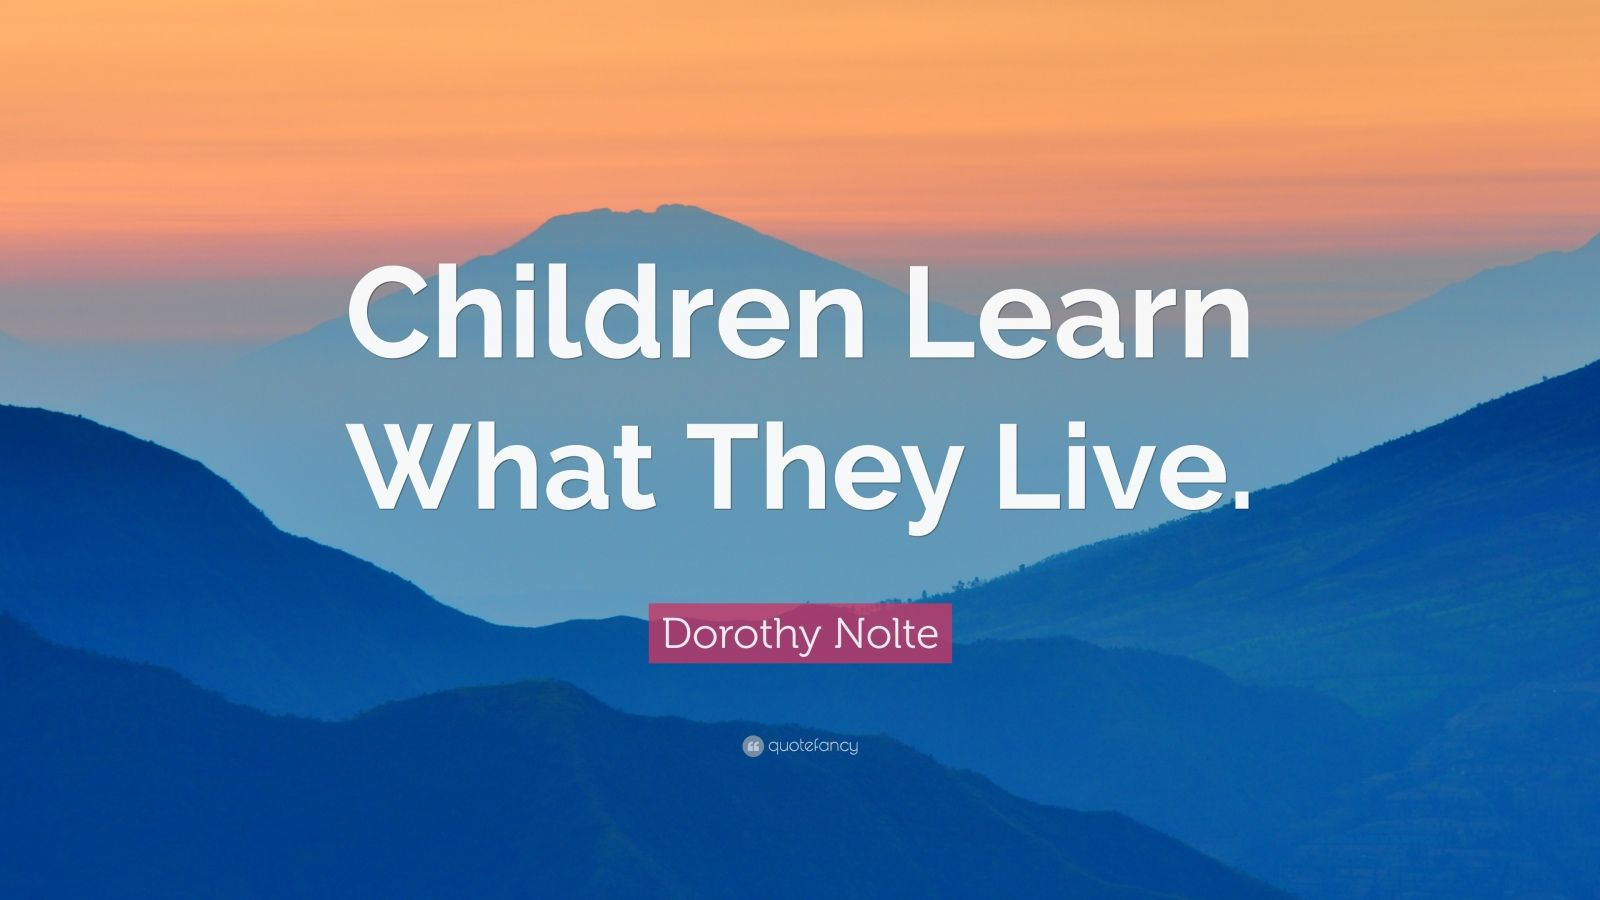 Children Learn What They Live - Actsweb